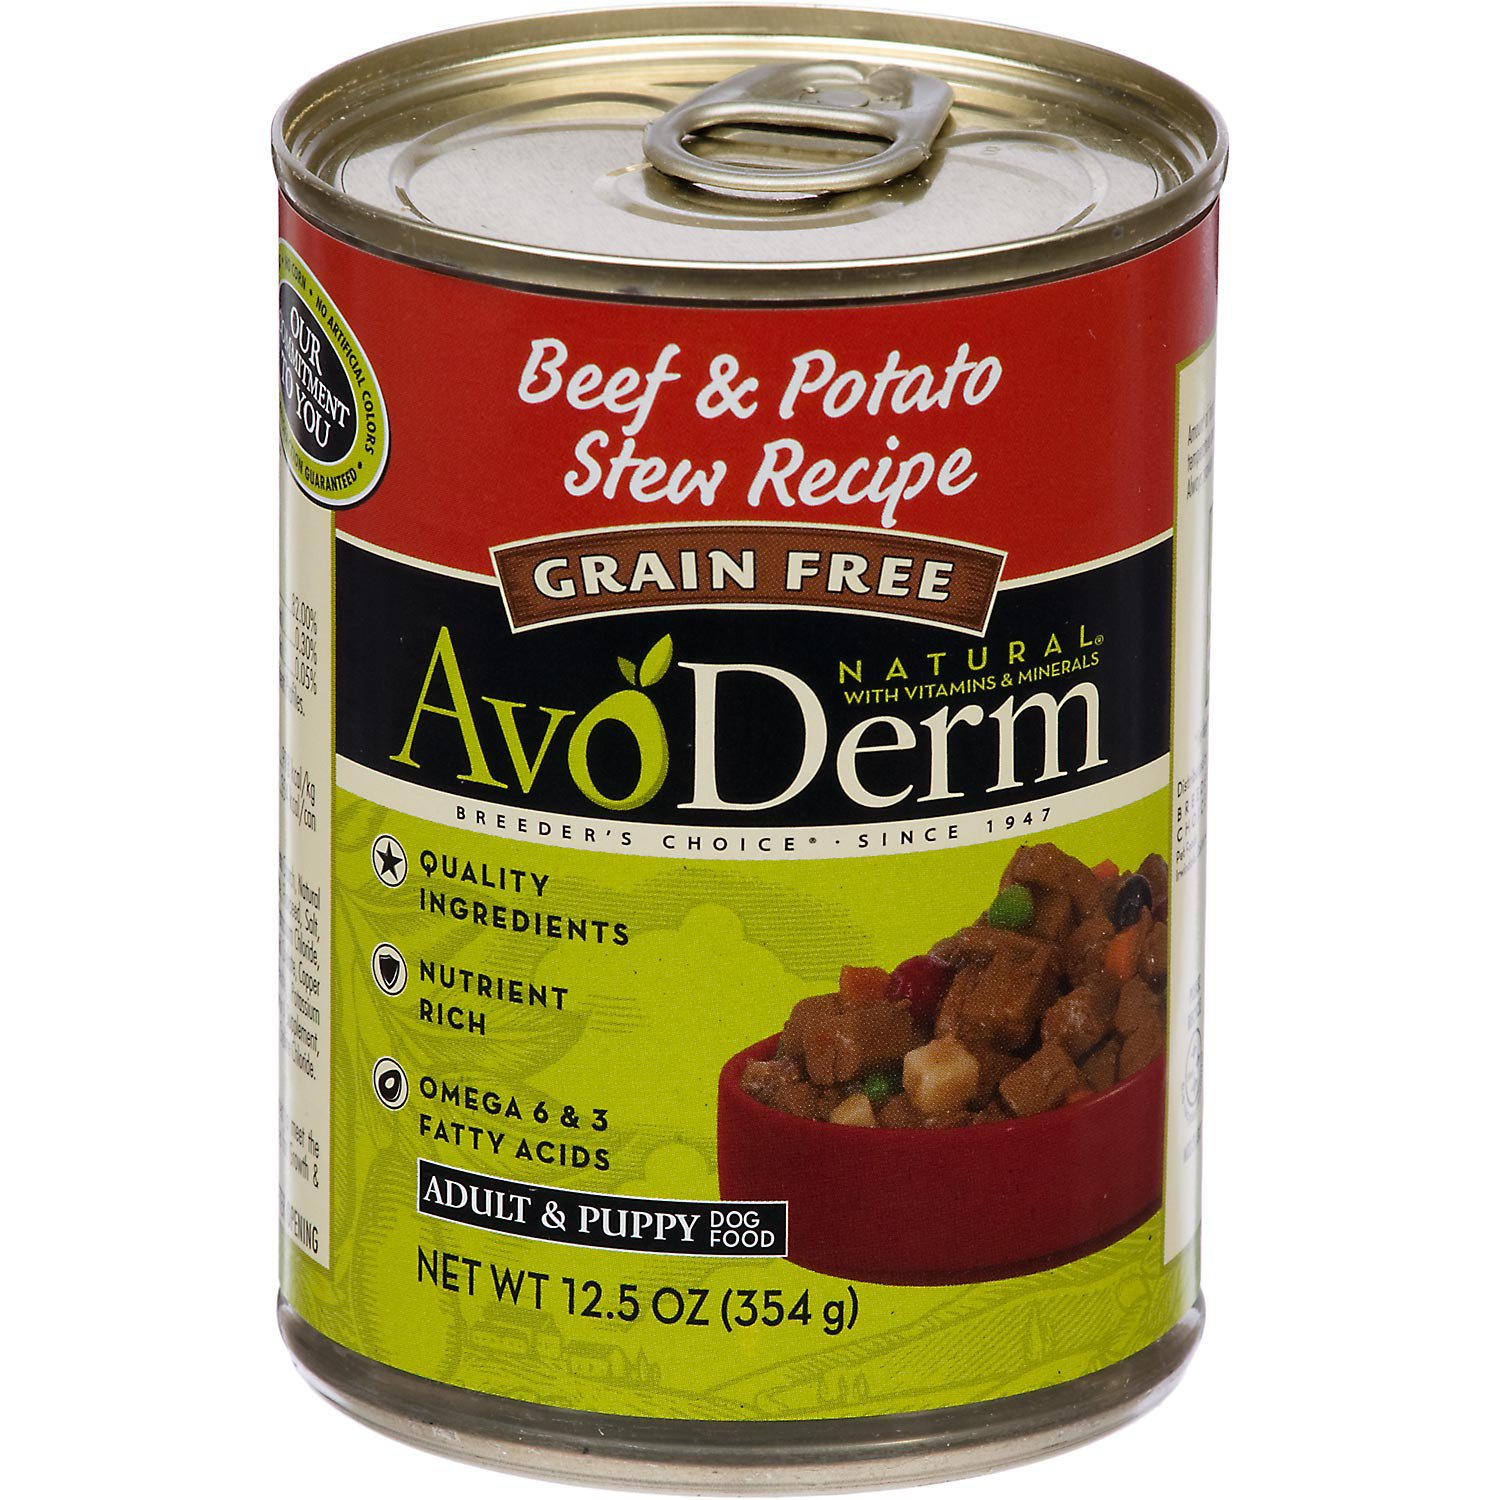 AvoDerm Grain Free Beef & Potato Stew Recipe Canned Dog Food